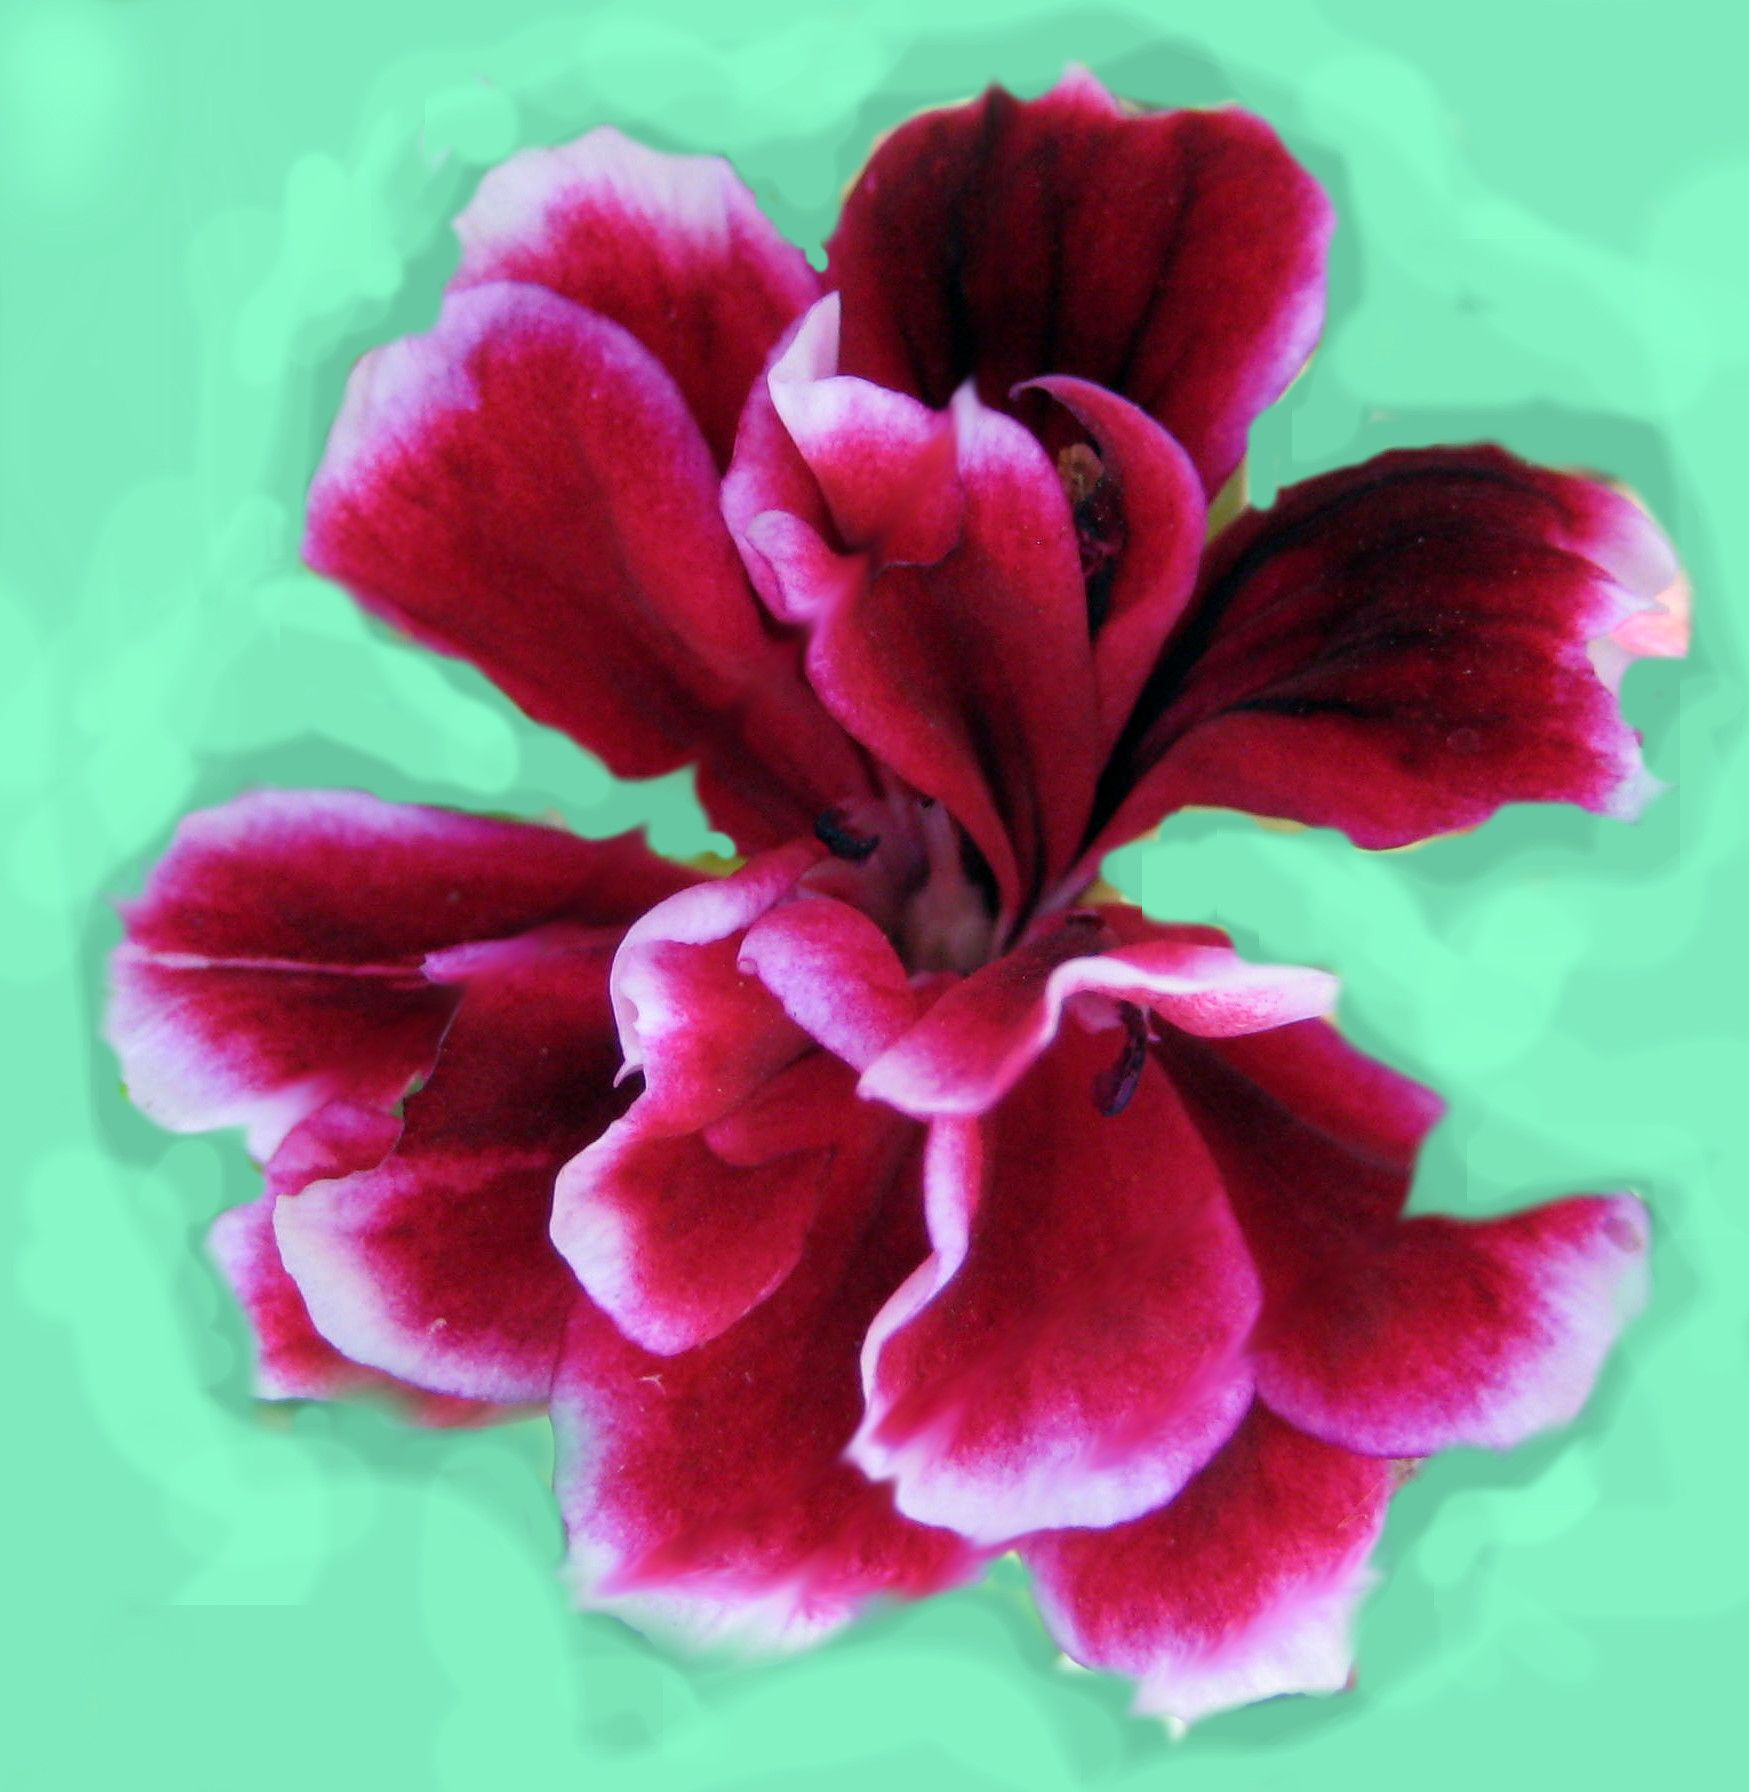 Geranium / Pelargonium Garden Advice By Jim Zemcik: When To Water Geraniums  (use Impatiens